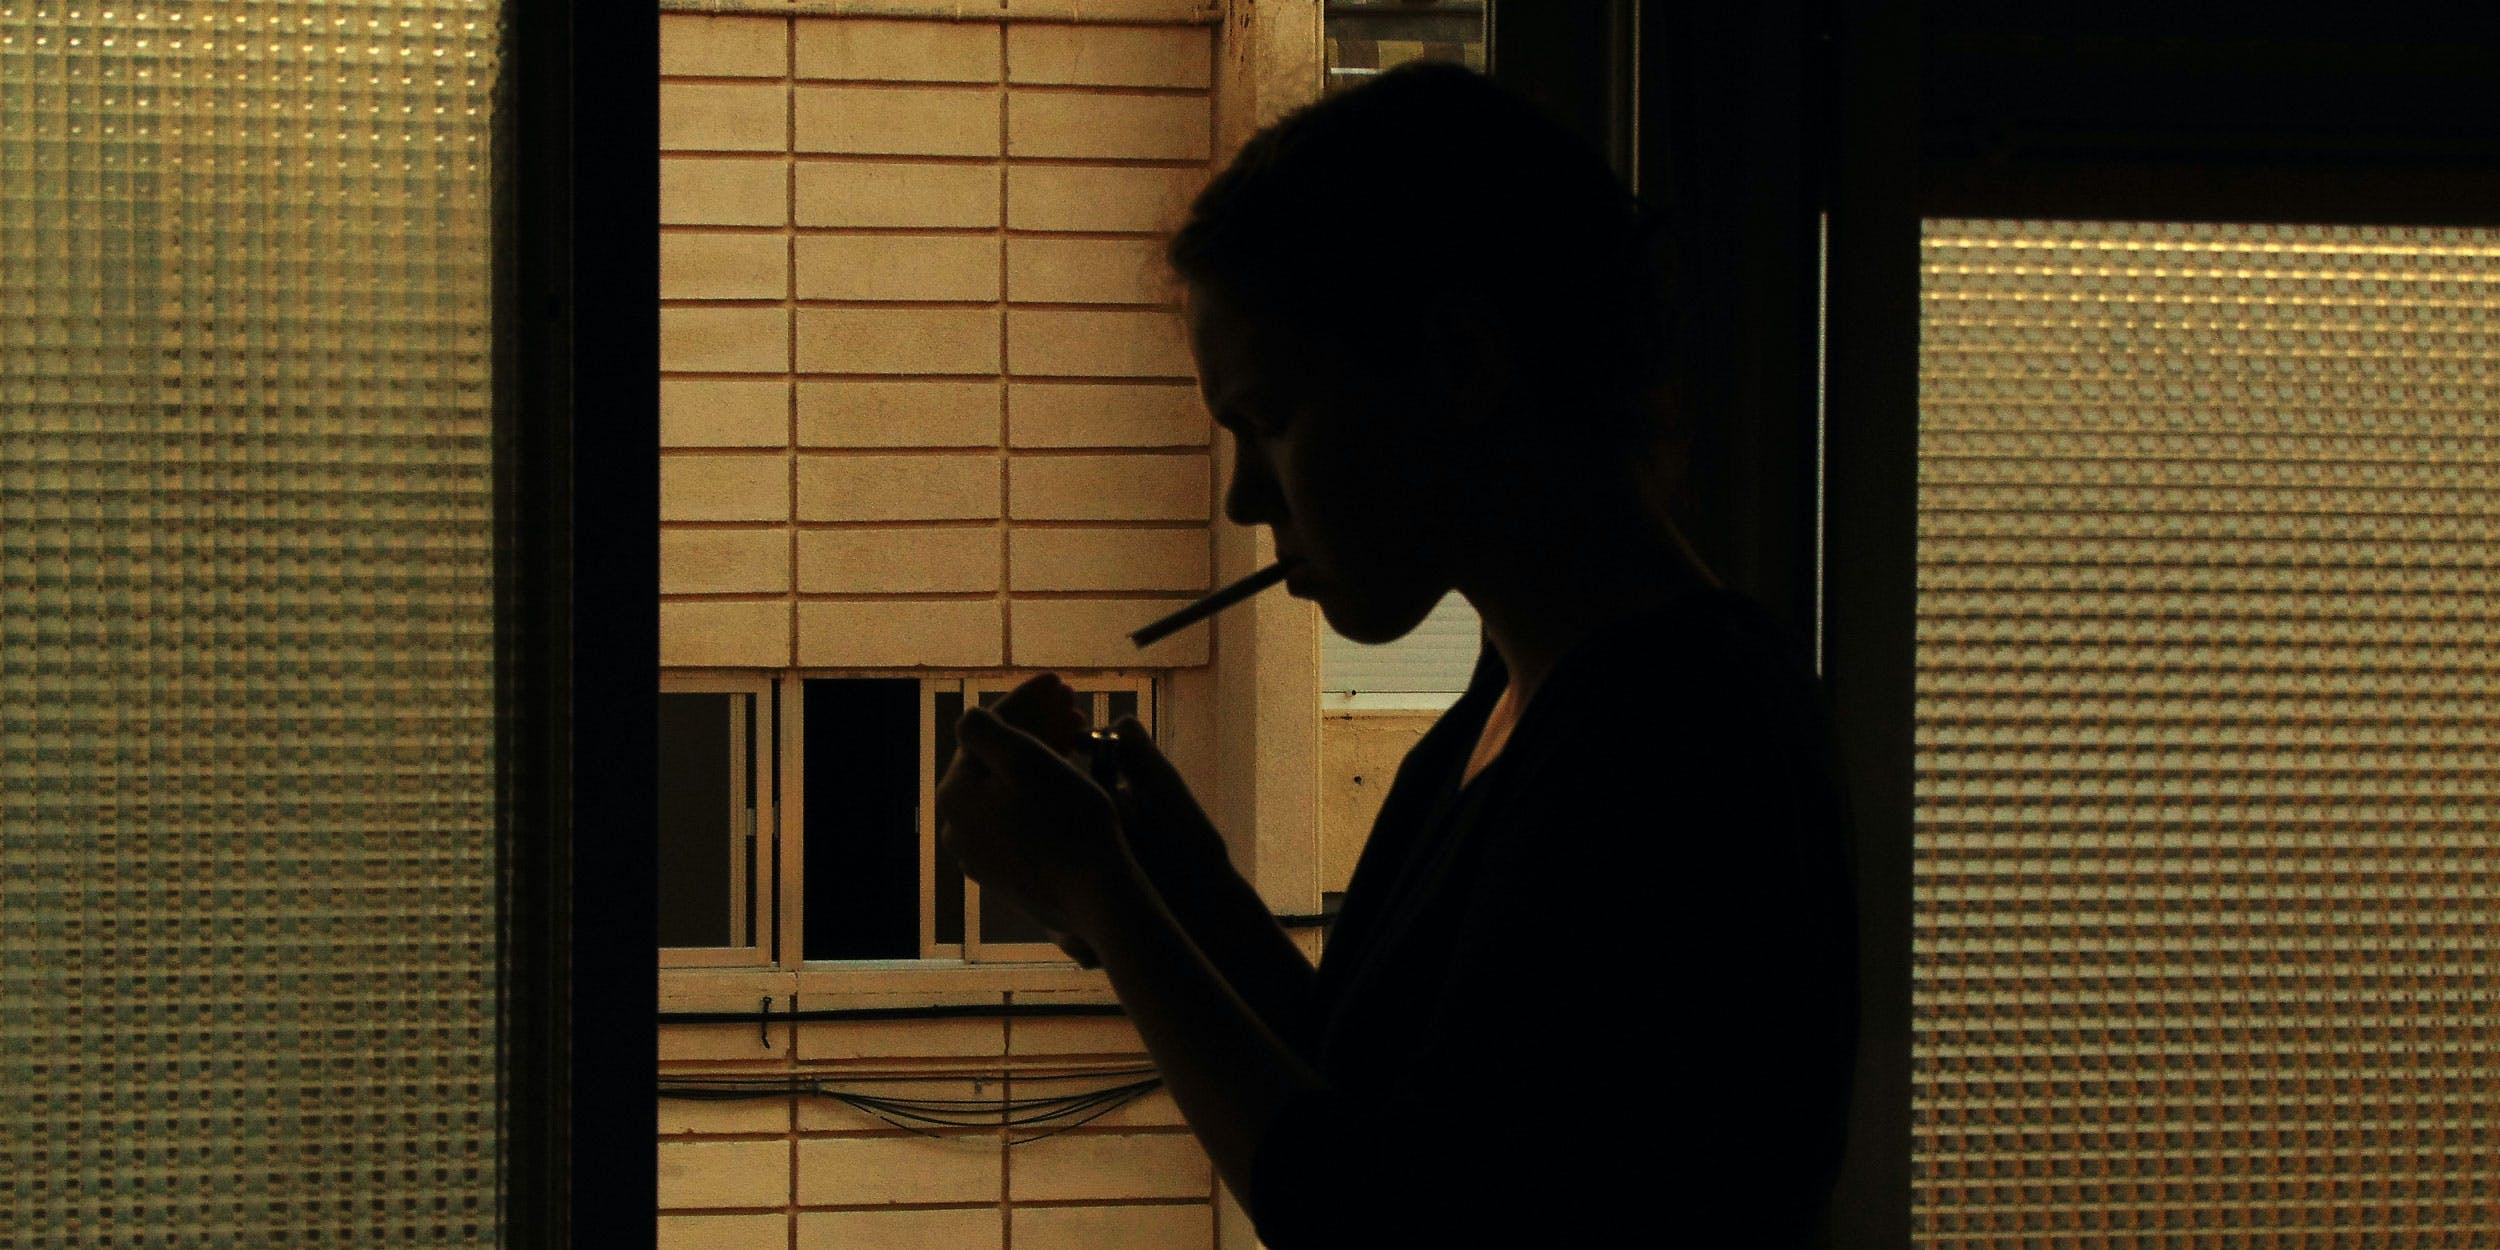 Woman sues sodexo for firing her for recreational cannabis use. Here, a woman is seen smoking at night